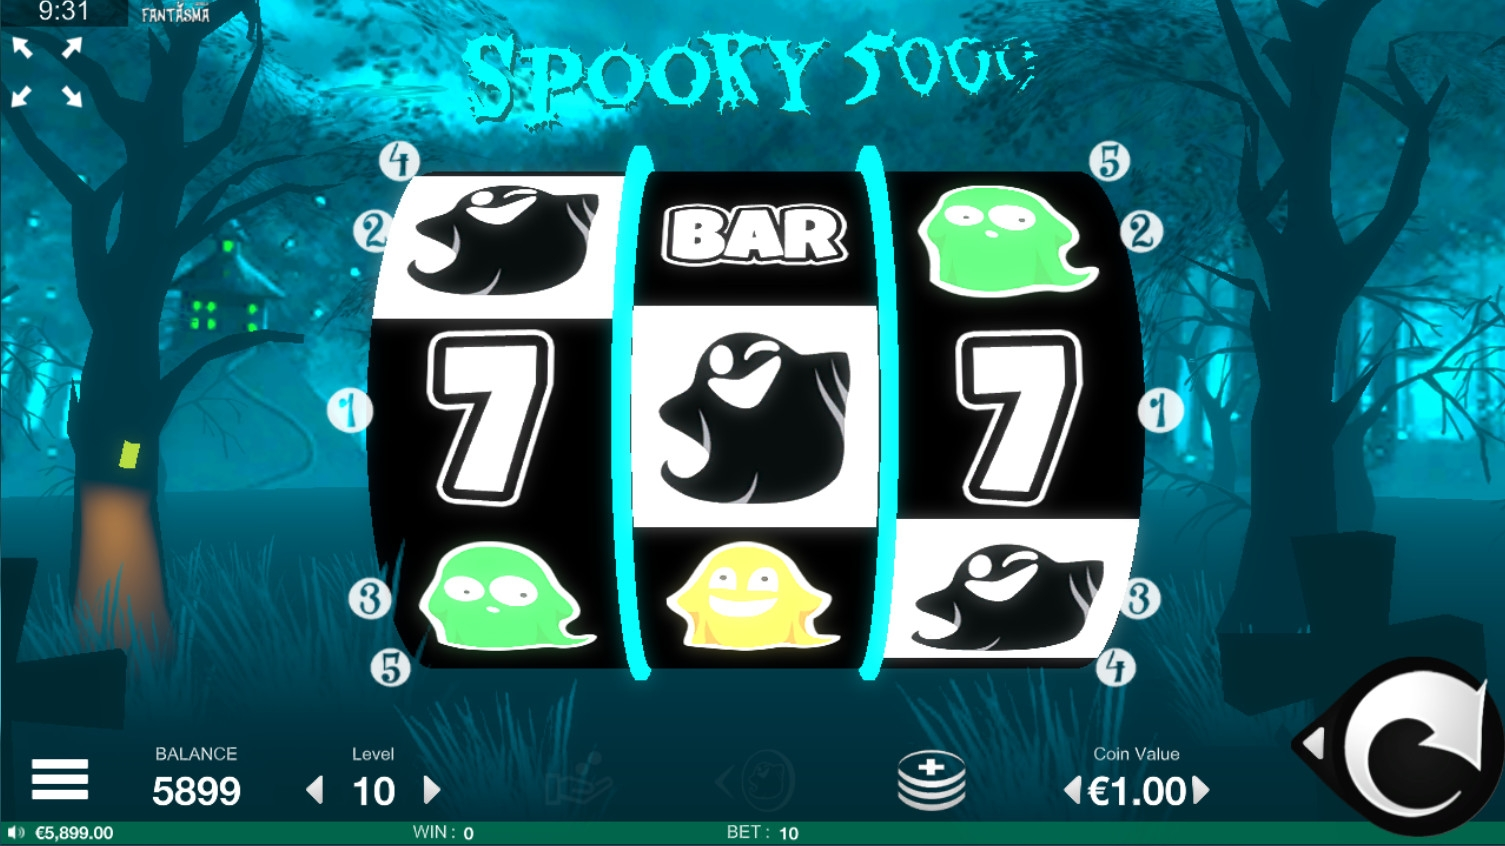 Spooky 5000 (Spooky 5000) from category Slots